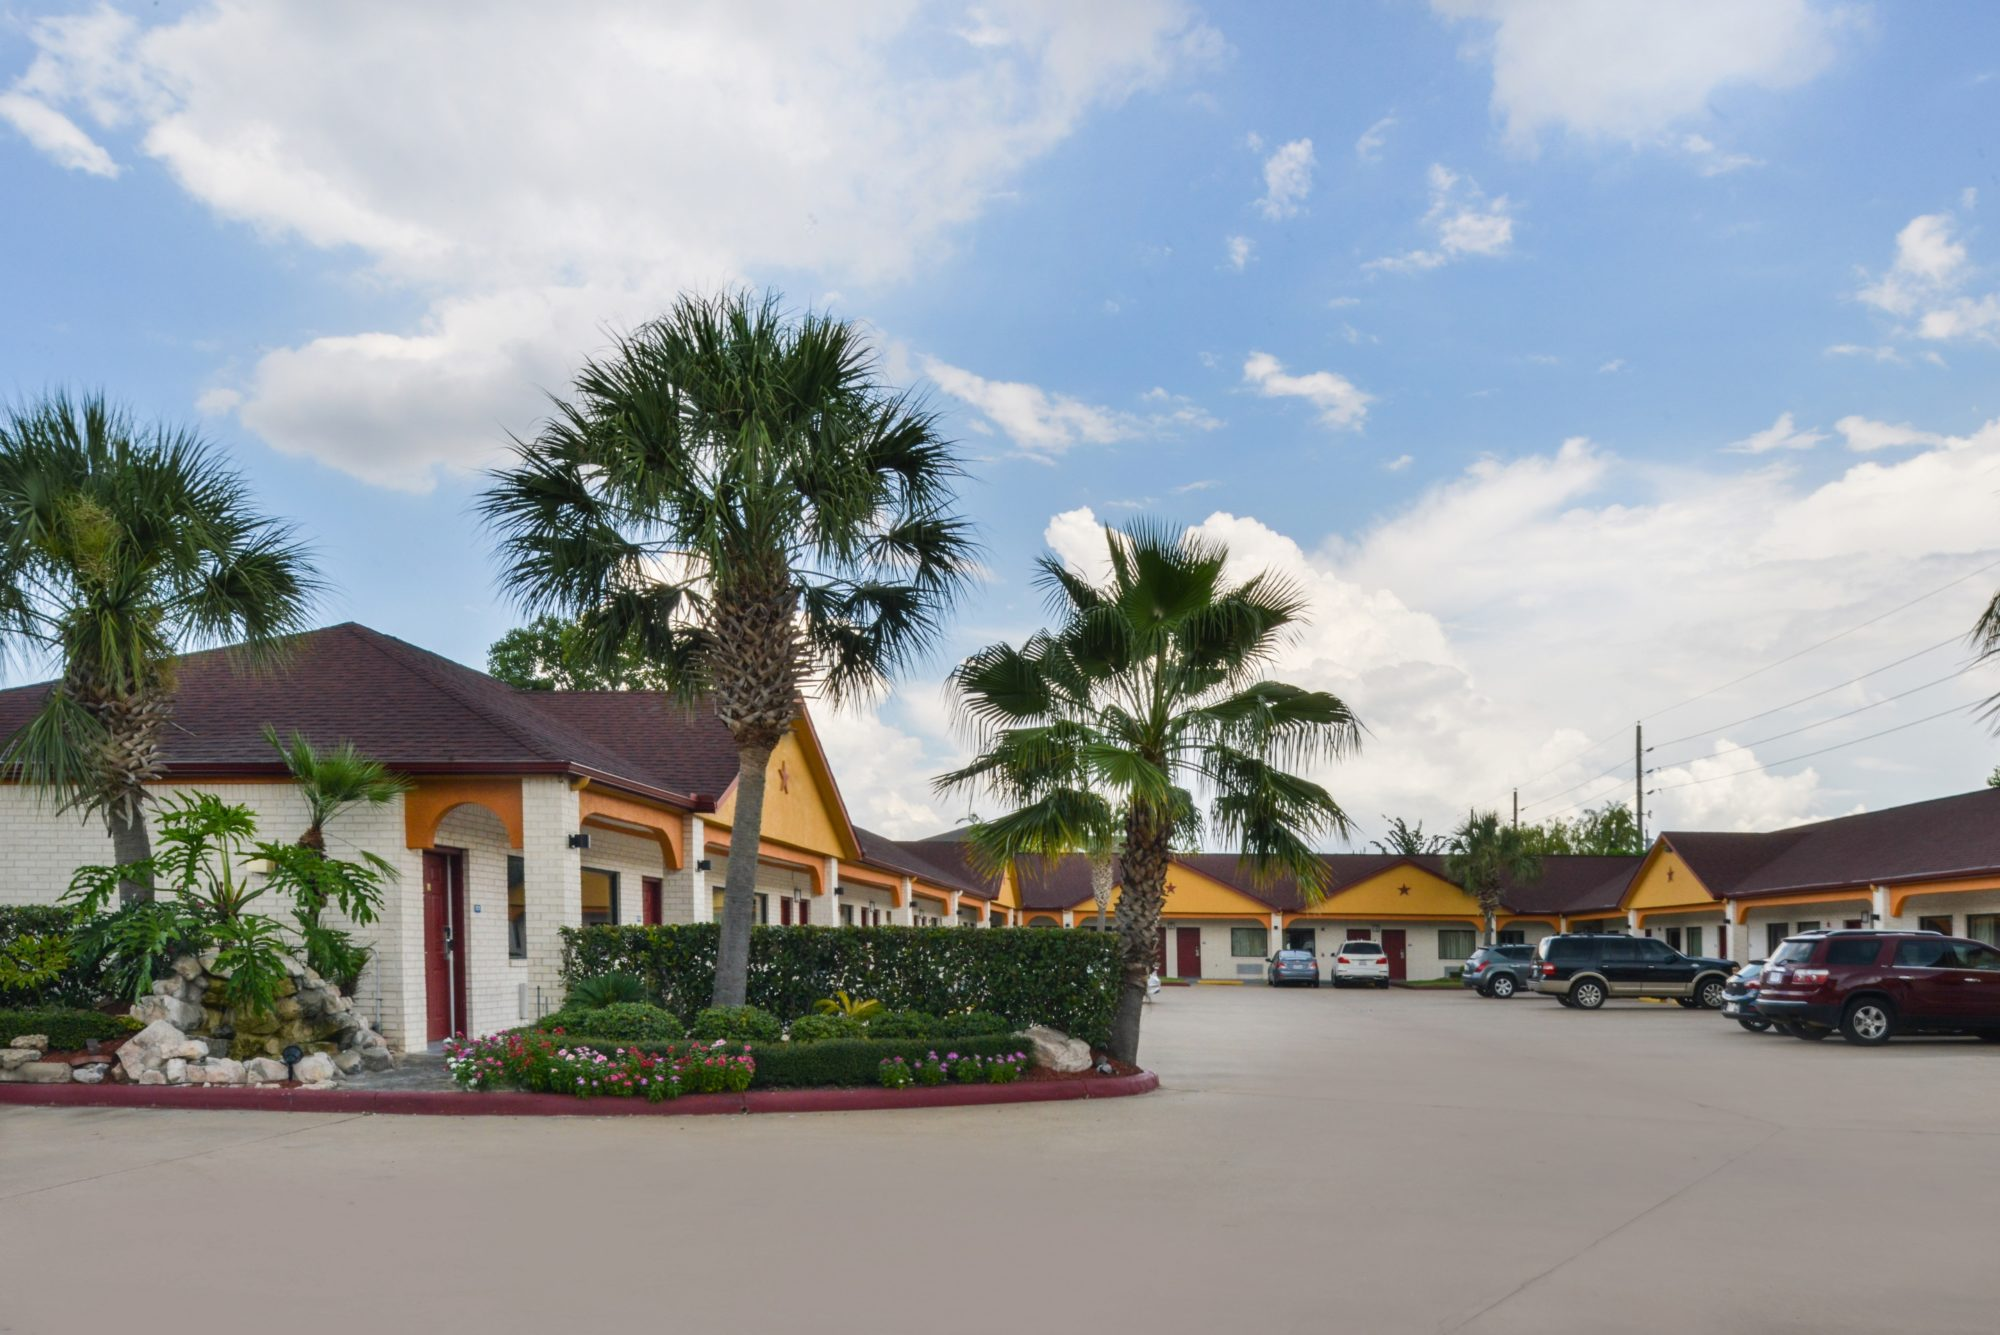 one story building with exterior room entrances, parking spaces, landscaping with trees, shrubs and flowers